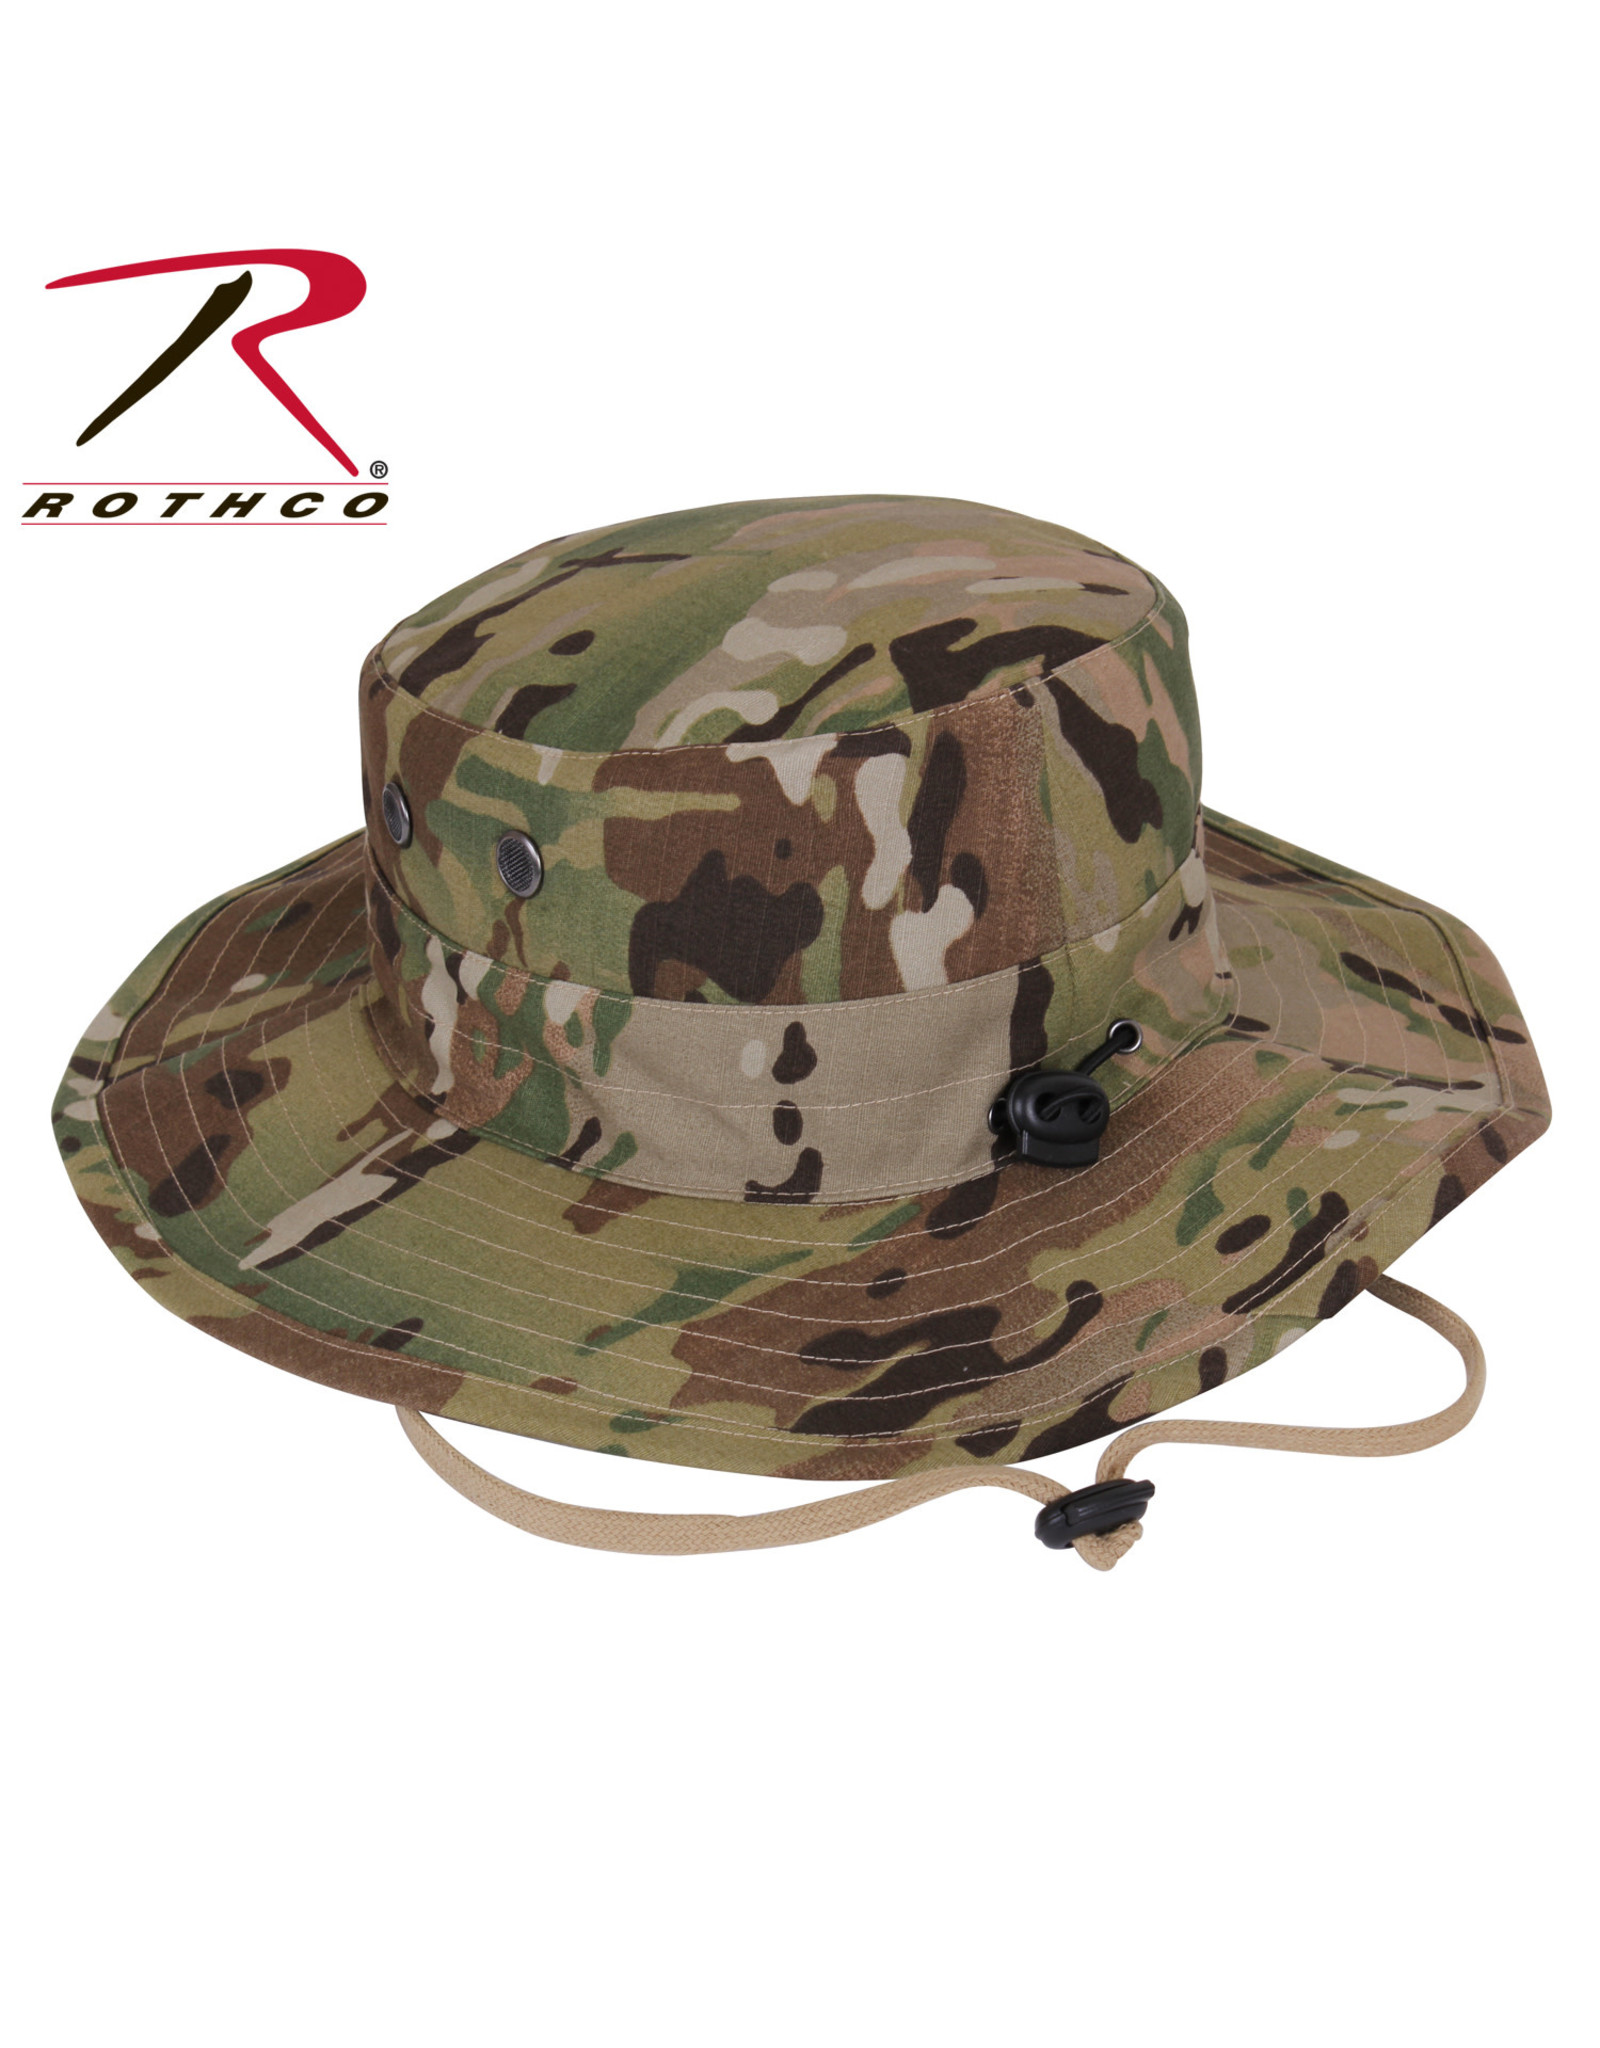 Rothco Adjustable Jungle Hat